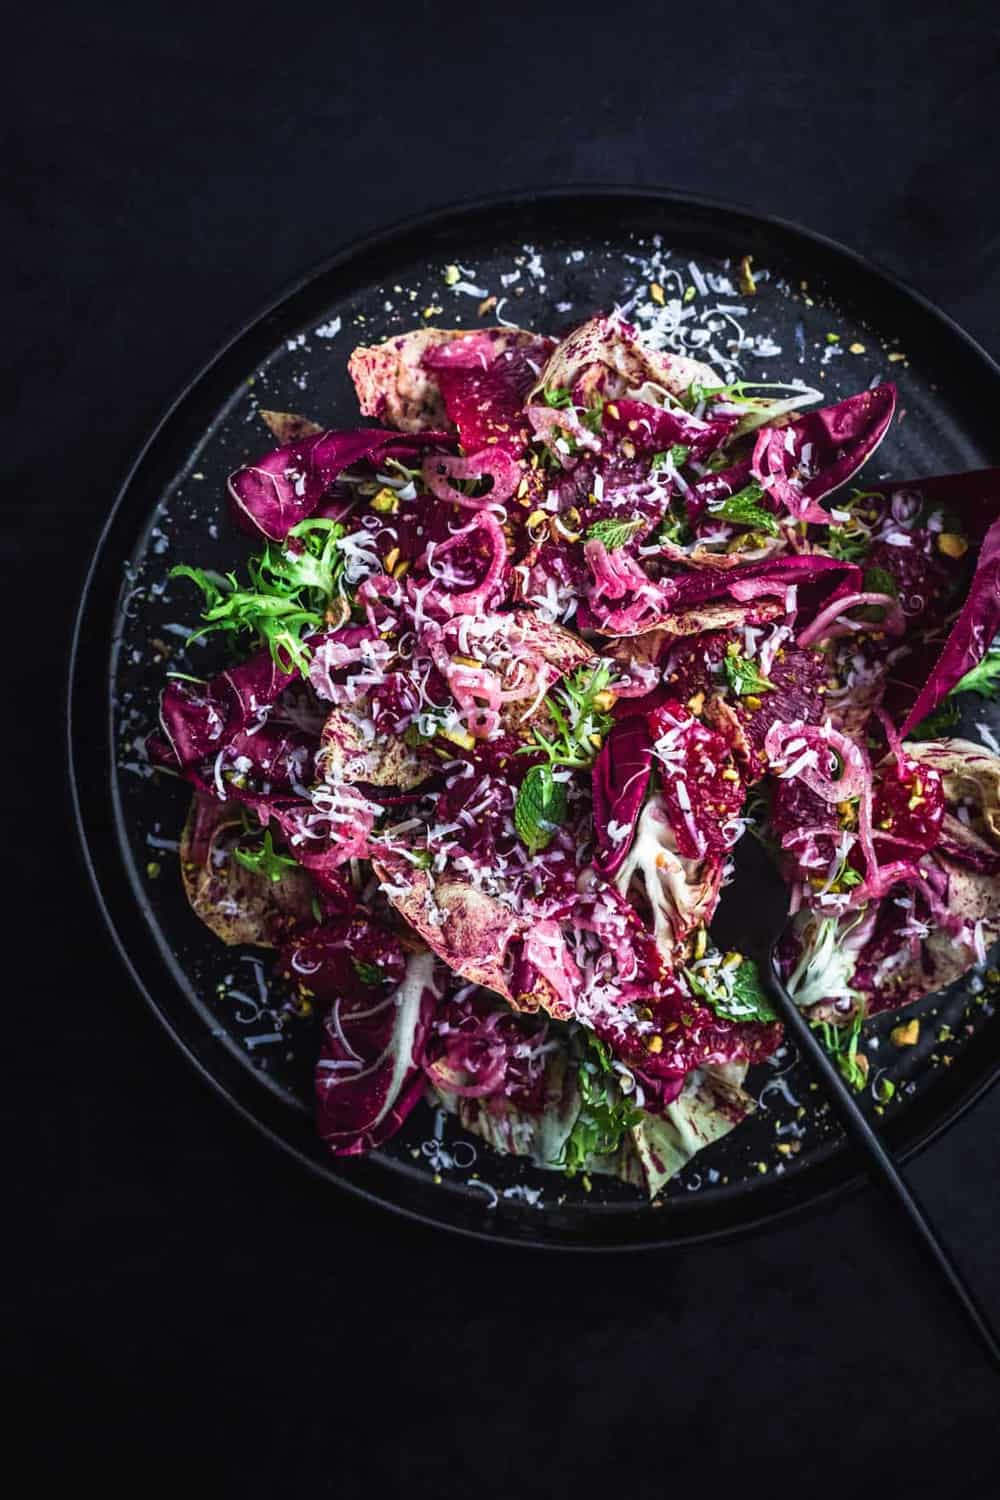 Blood Orange and fennel salad with chicories, pistachios, shredded cheese, mint and shallots on a black plate with a fork.